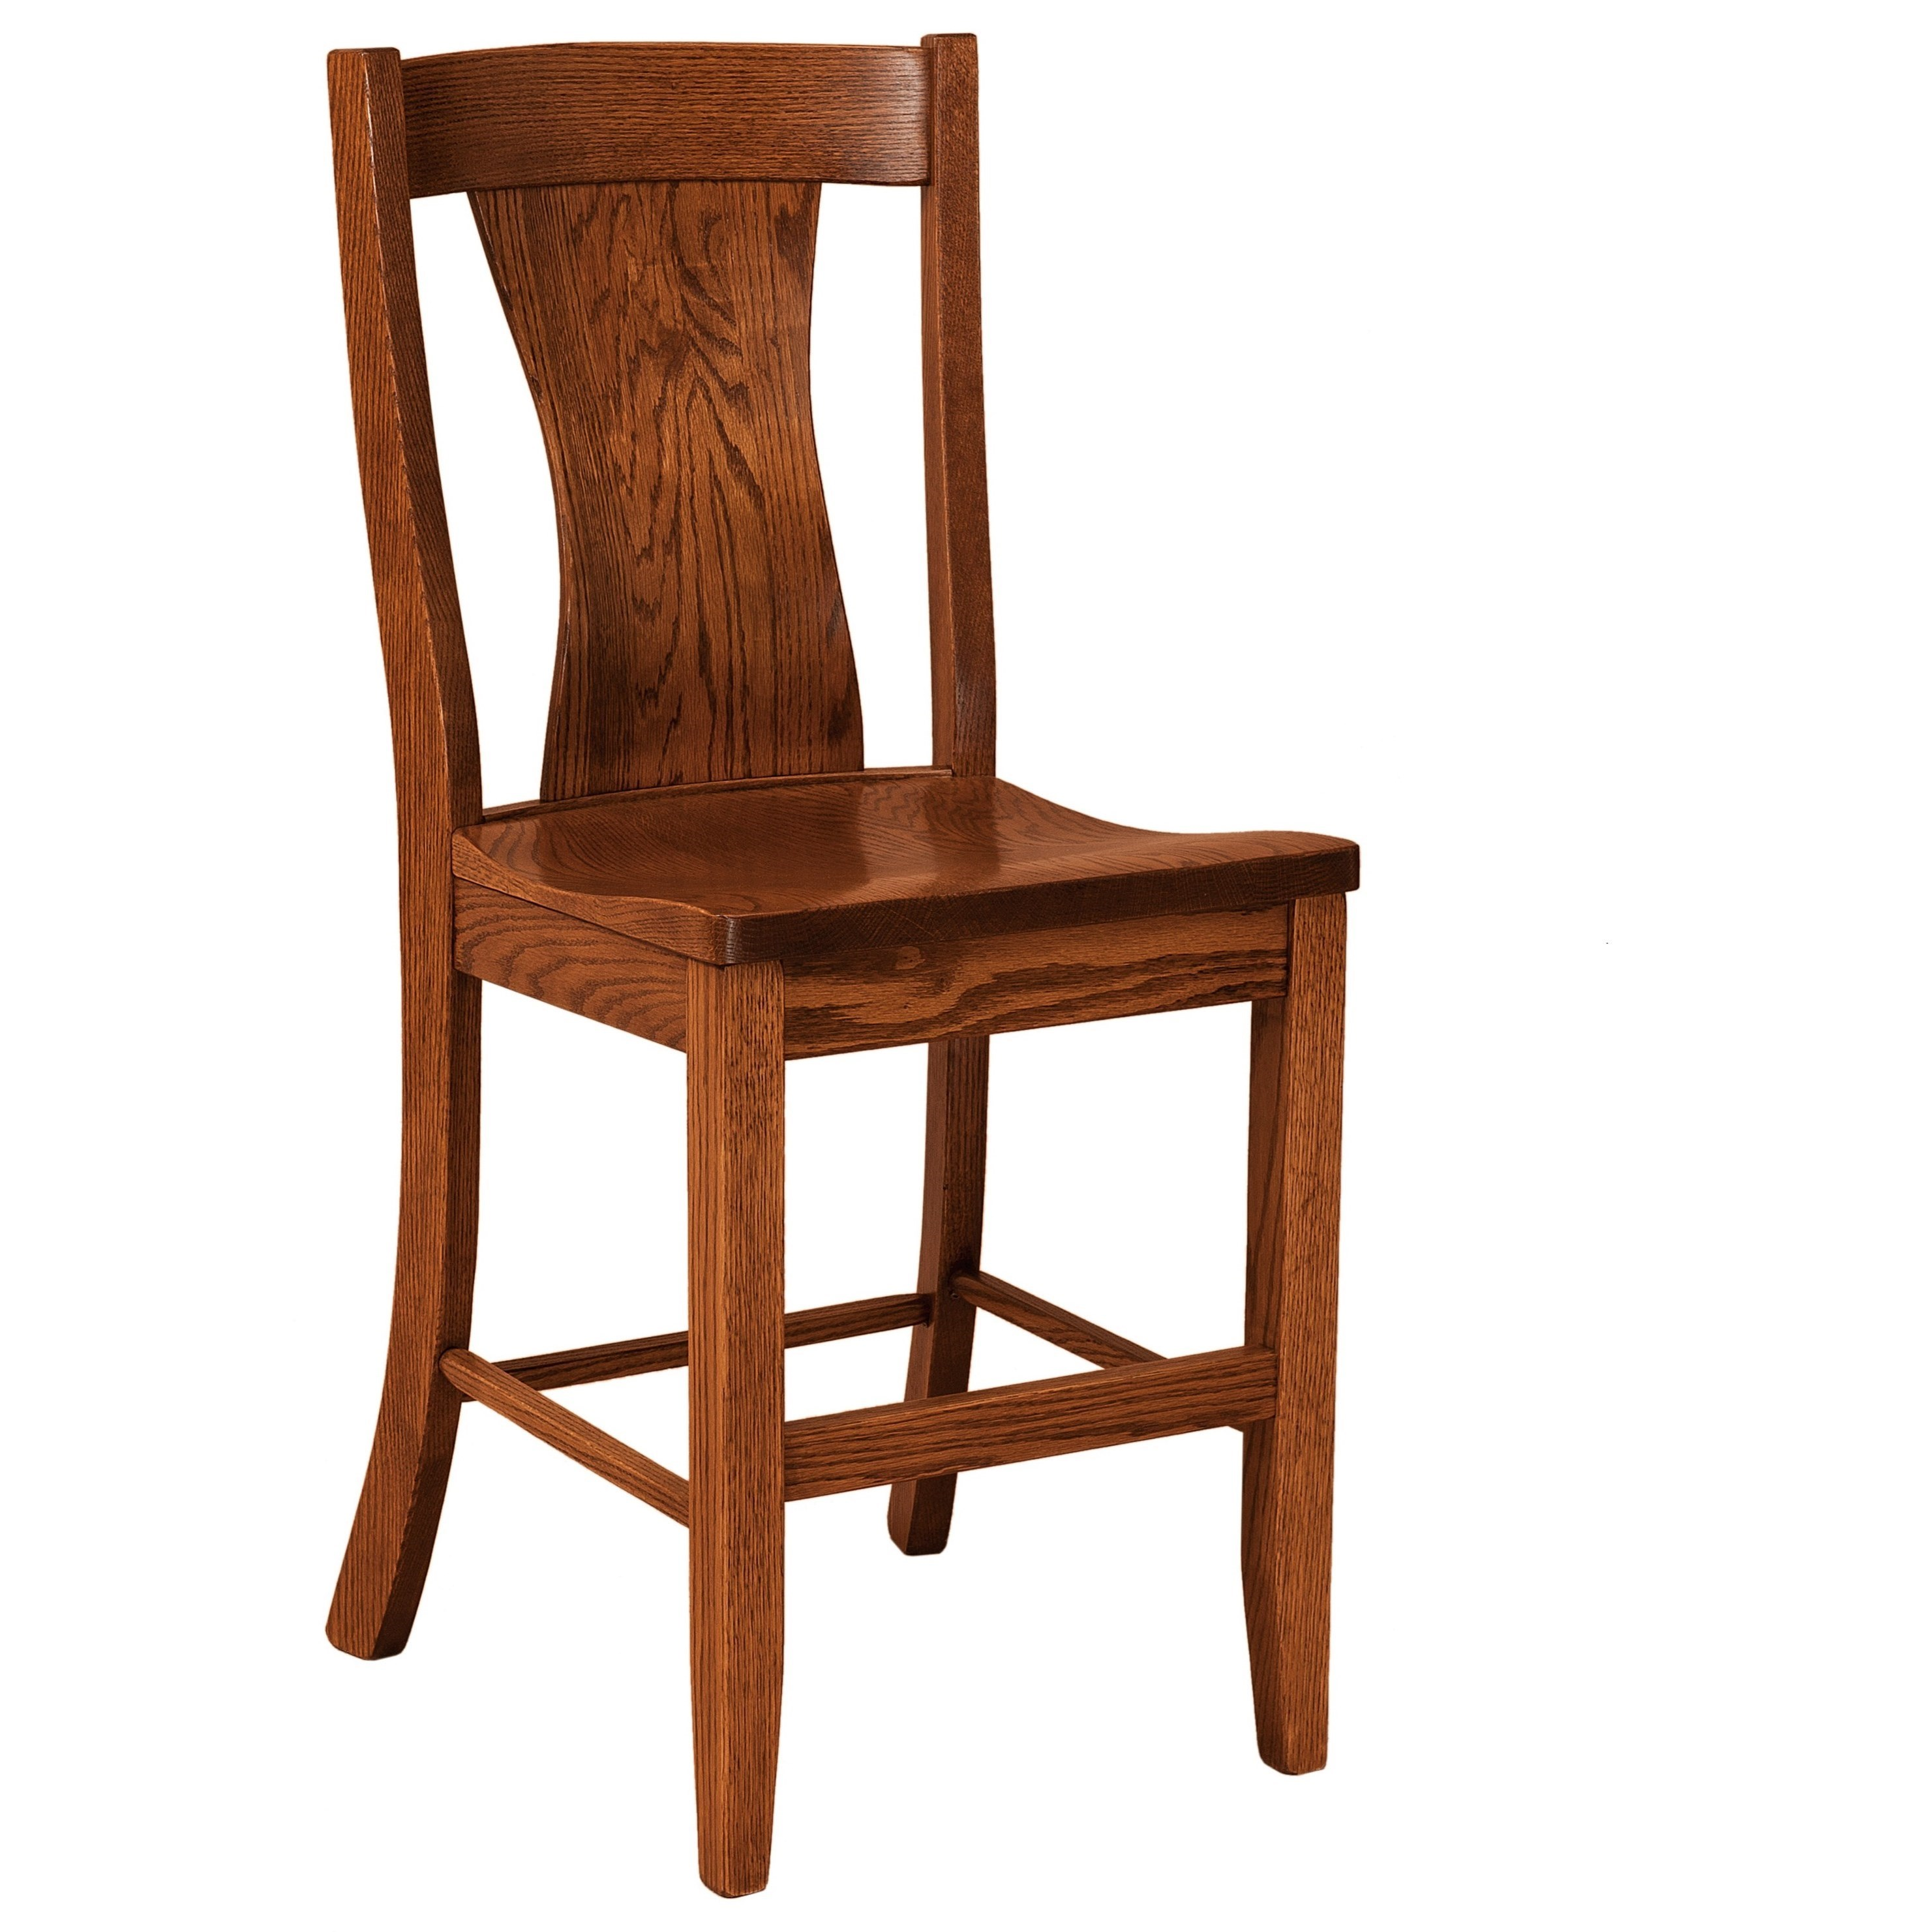 Westin Stationary Bar Height Stool - Leather Seat by F&N Woodworking at Mueller Furniture